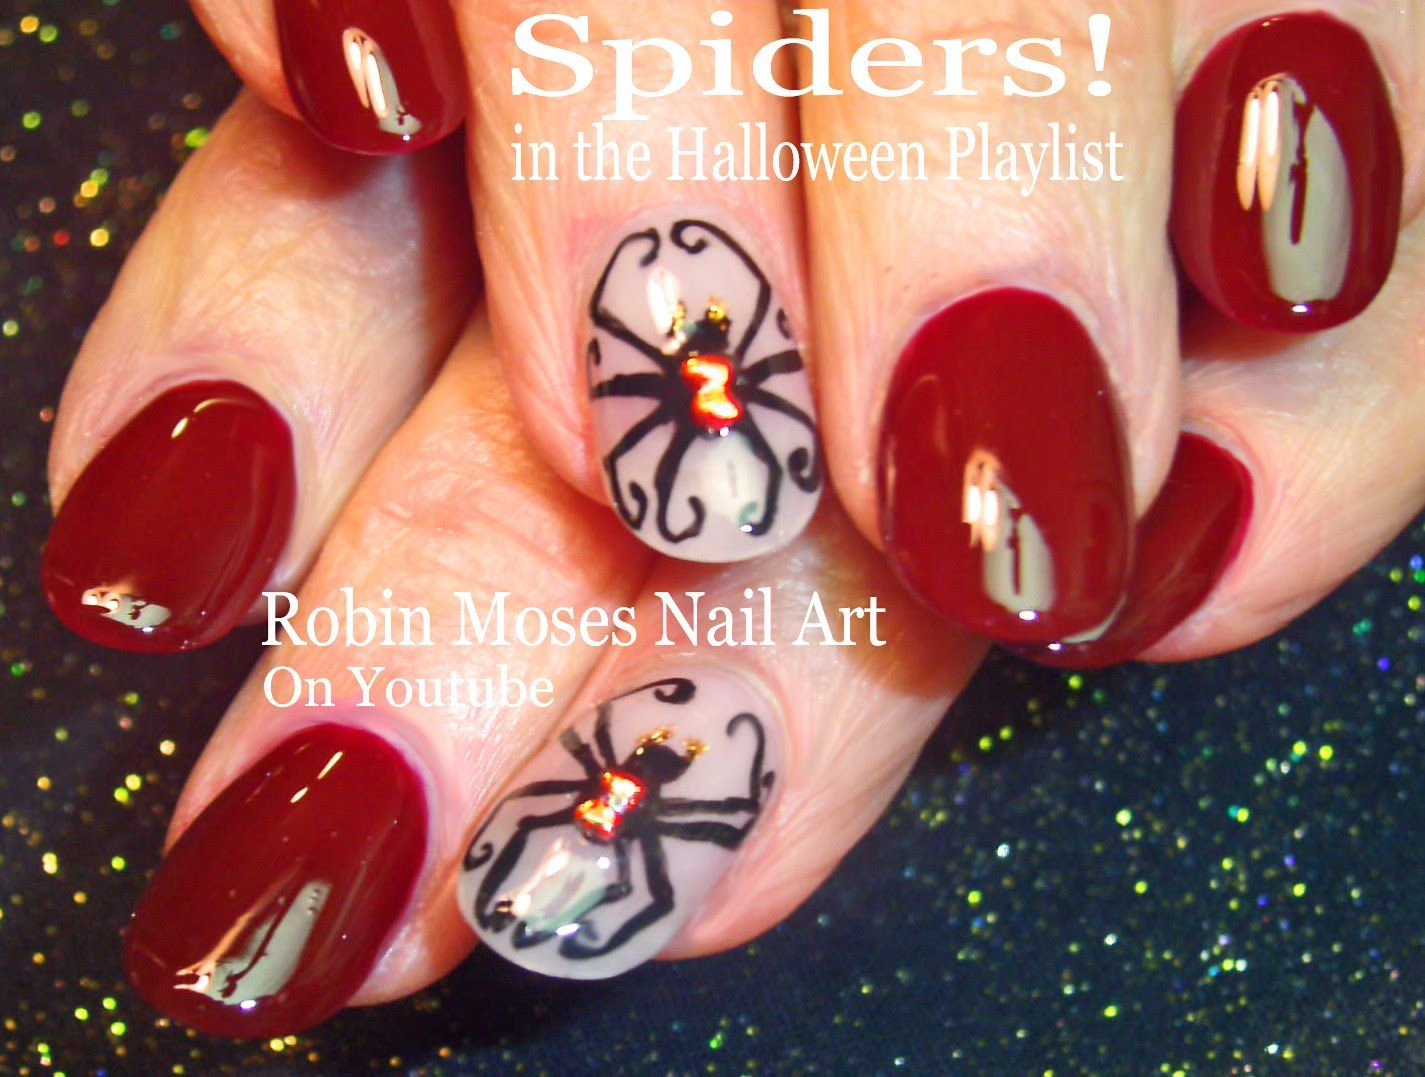 Black Widow Nail Art for Halloween!! #blackwidow #spider # #fun #cute #halloweennails #nailart #nails #art #nail #design #tutorial #animal #diy #polish #halloween #easy #simple #trendy